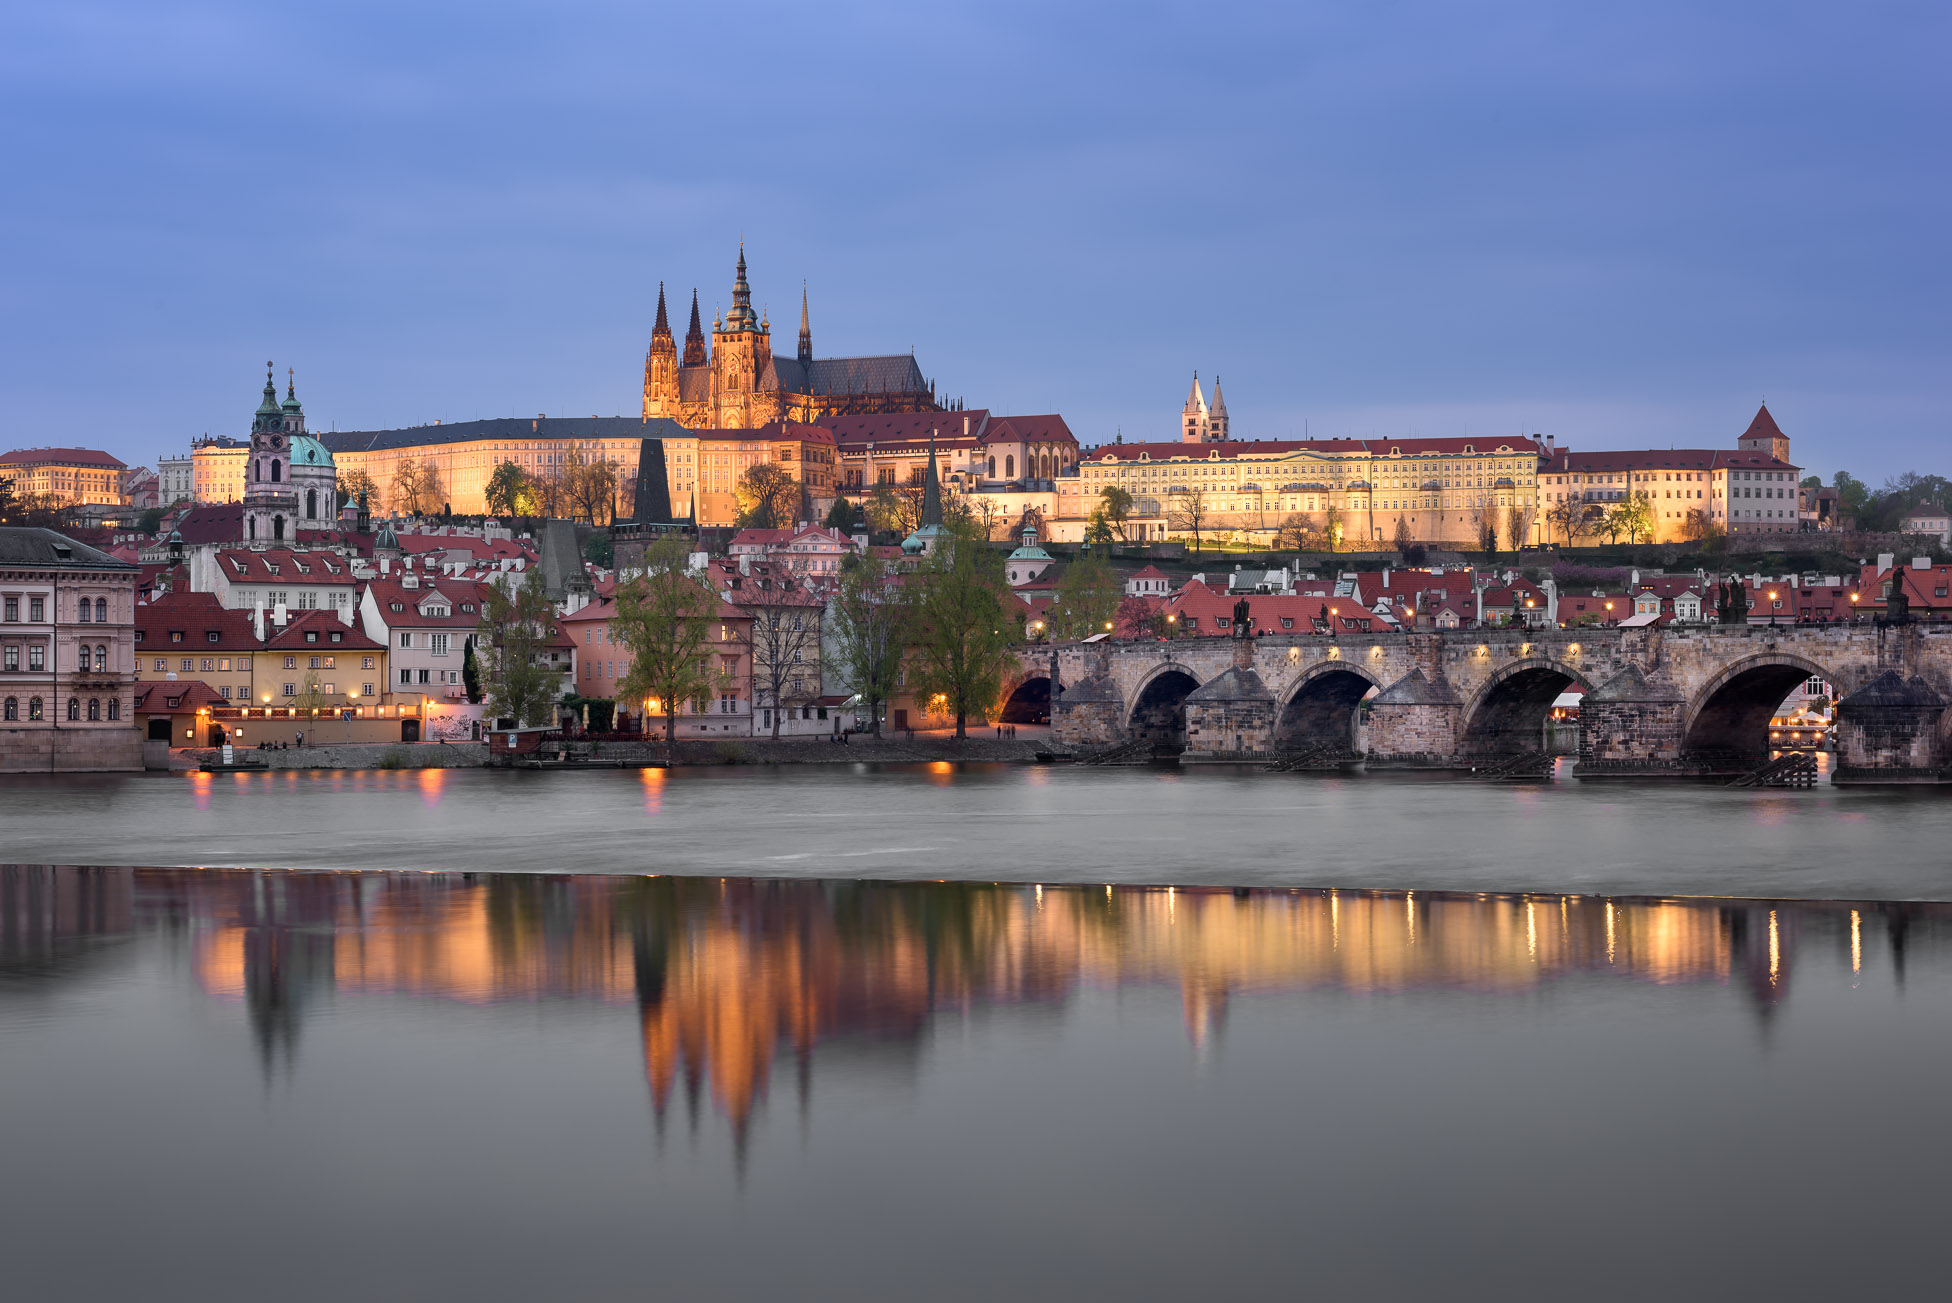 Prague Castle, Charles Bridge and Saint Vitus Cathedral in the Evening, Prague, Czech Republic